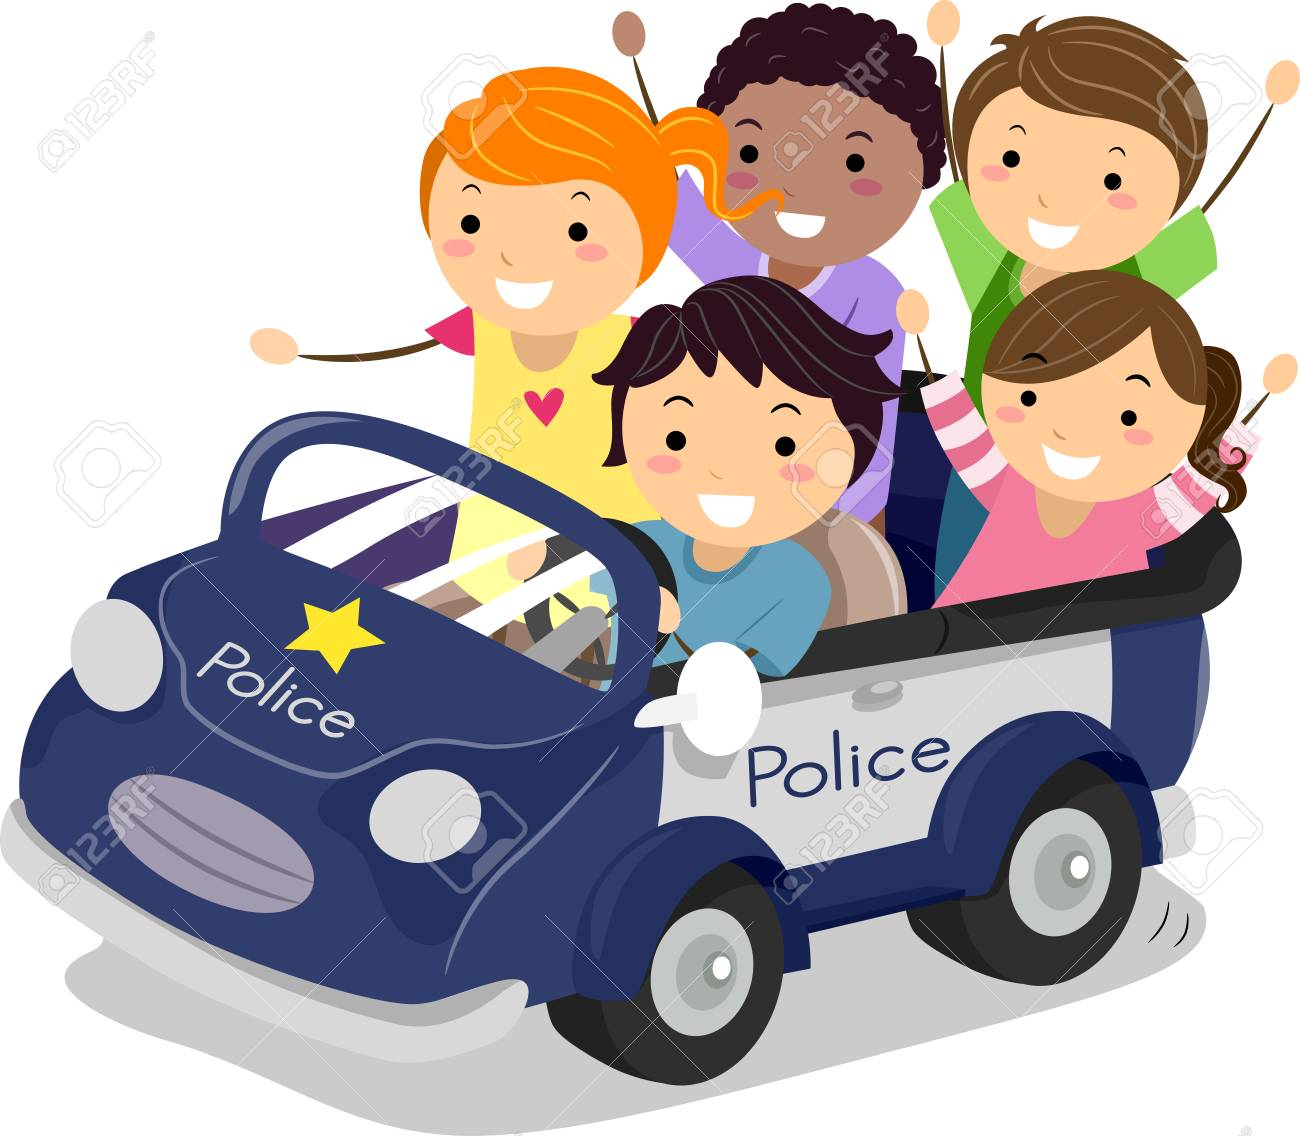 Illustration Of Stickman Kids Playing Cop Riding A Police Car Stock